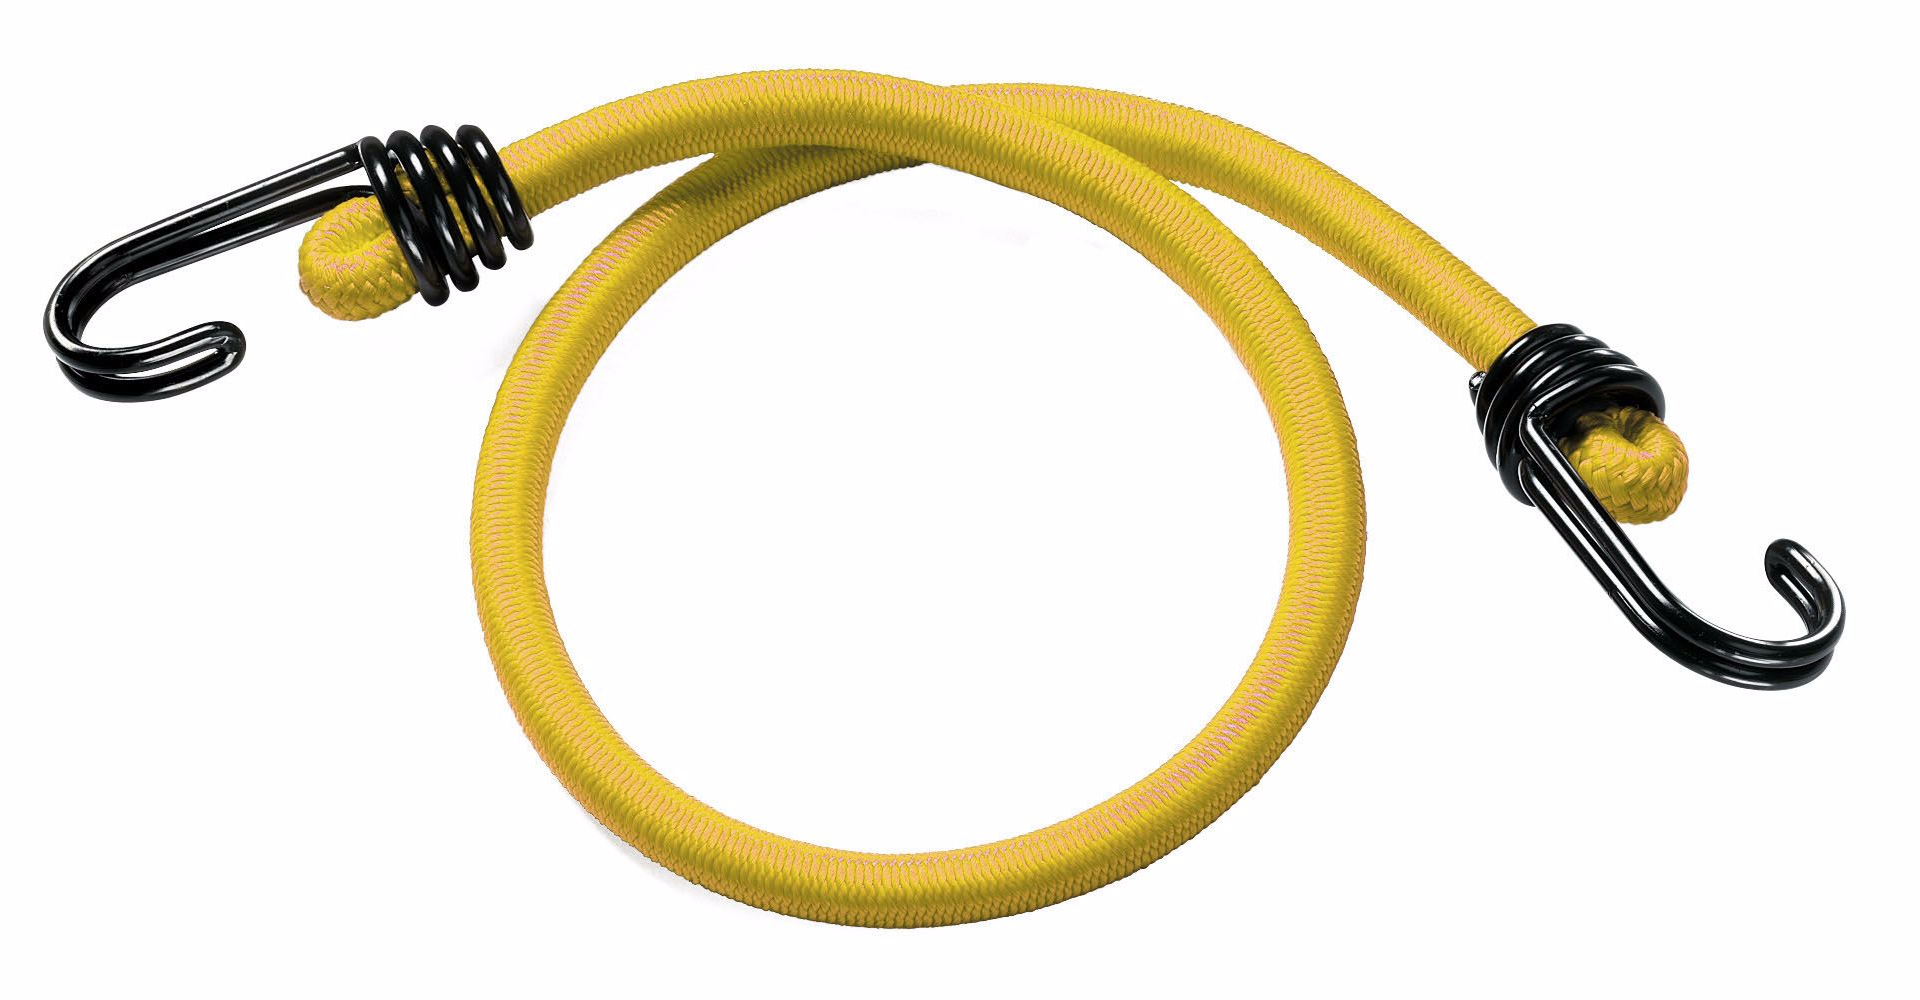 Timko Ltd 8mm Yellow Bungee Cord Strap X 60cm With Reverse Hook Bungee Shock Cord Straps